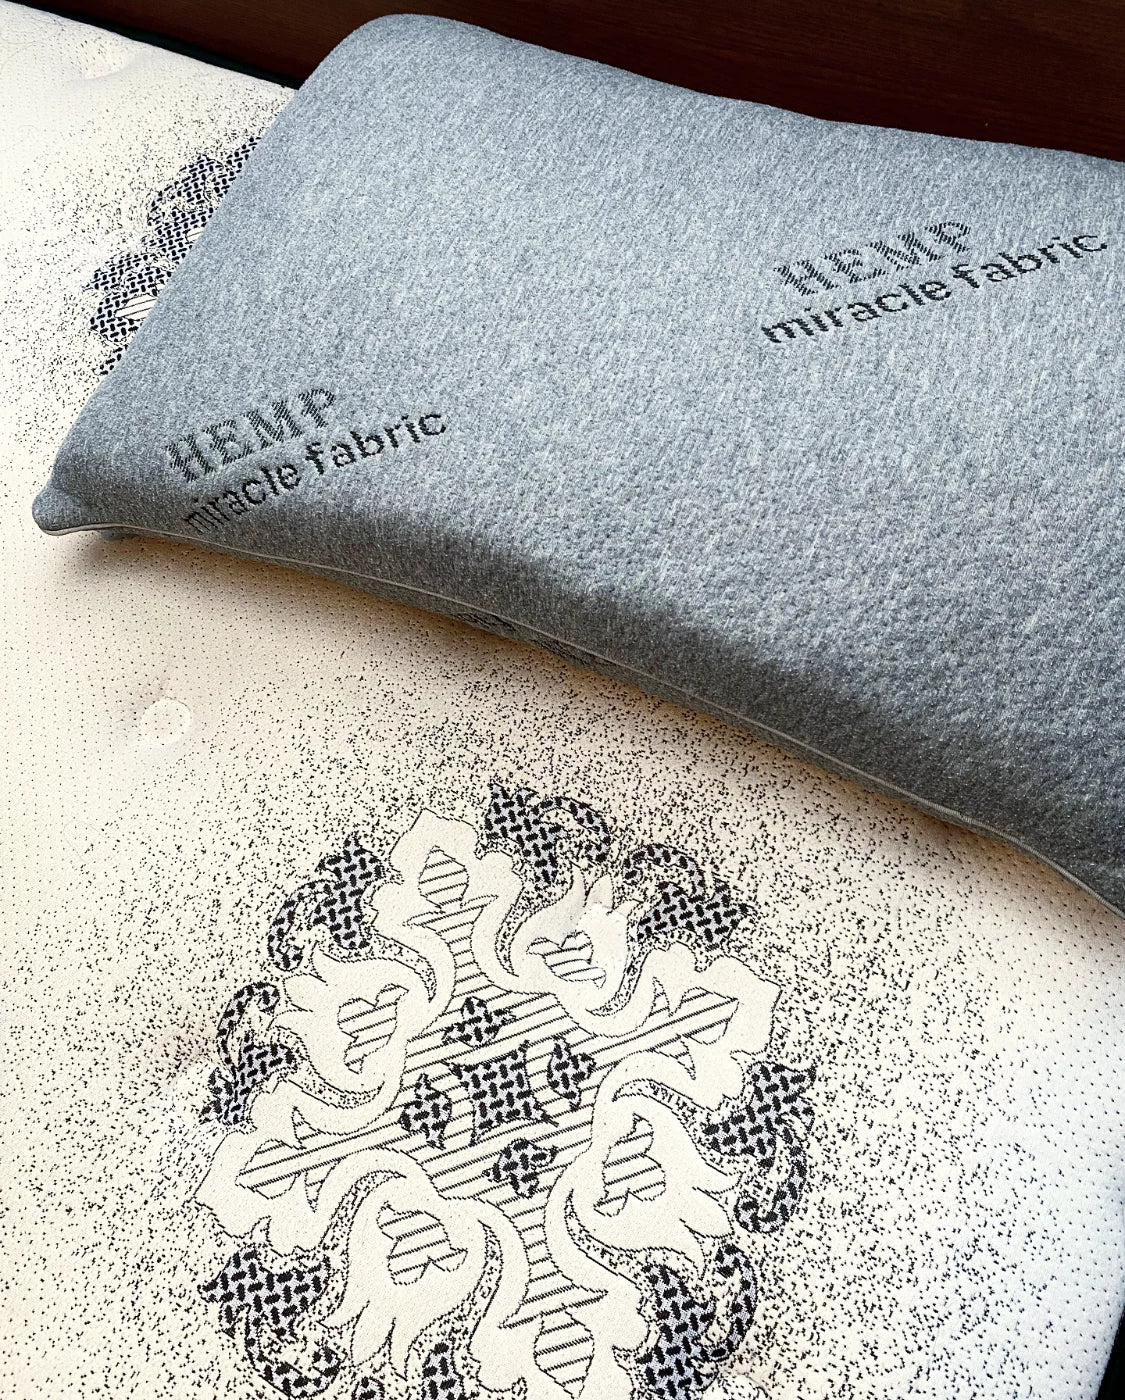 A photo of The Hmp Pillow and The Crown Series